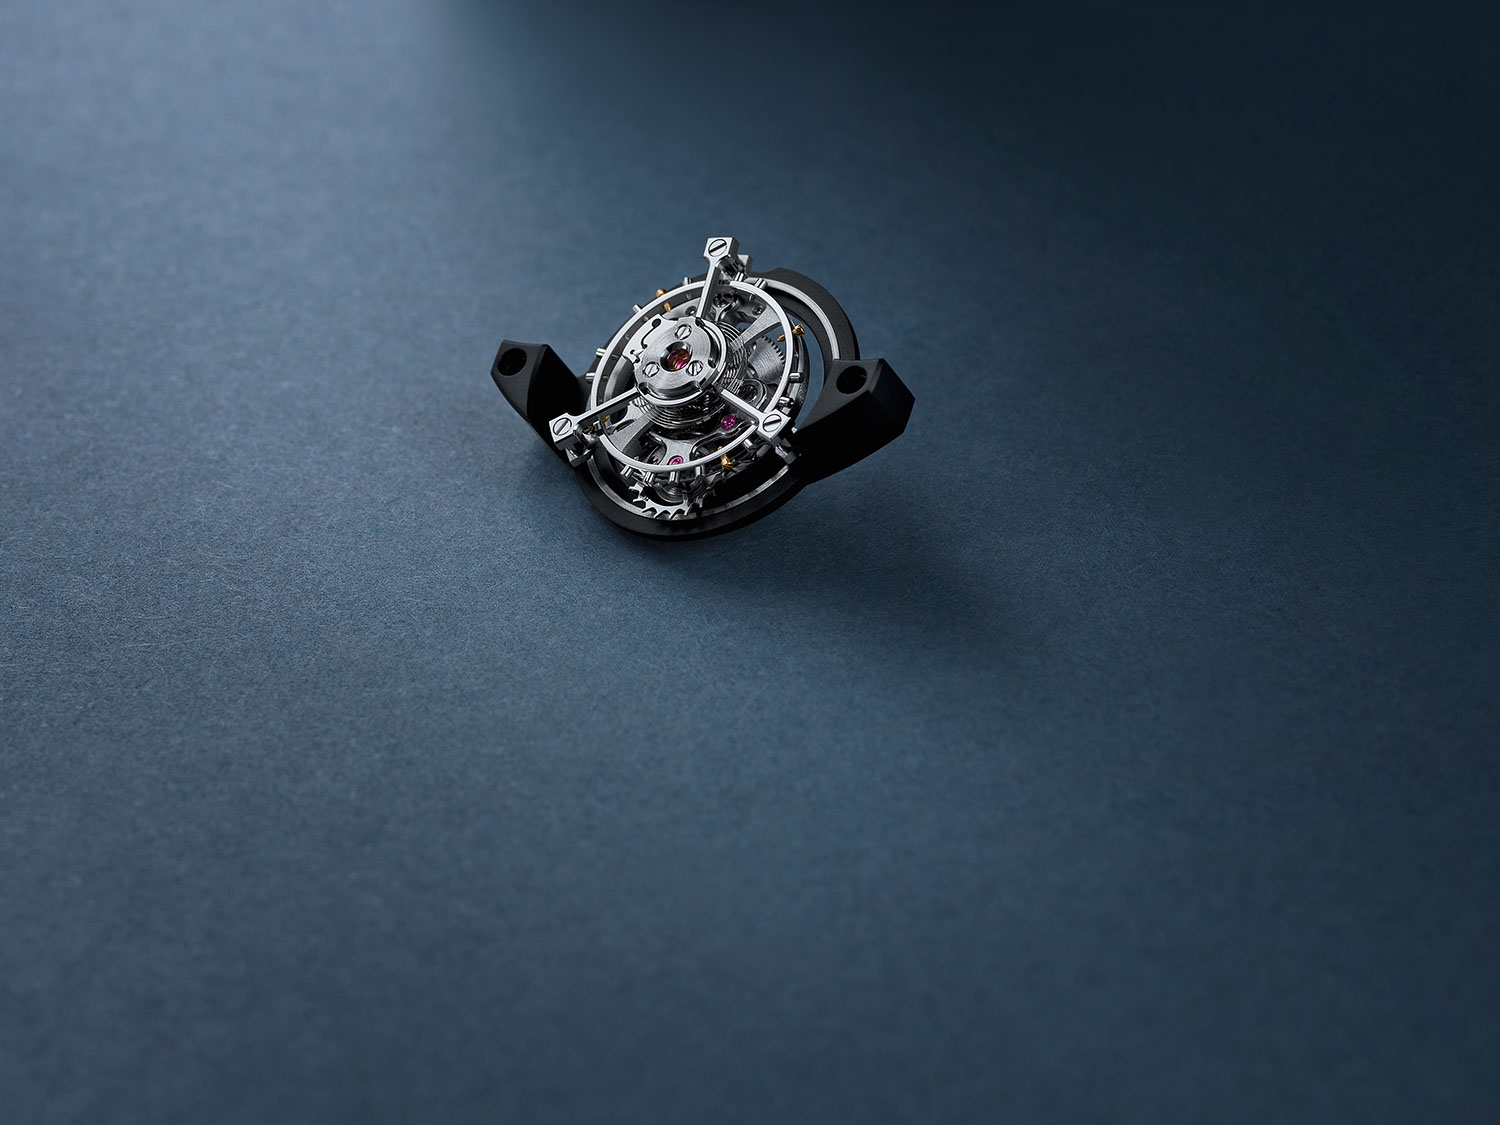 The flying tourbillon assembly of the The Caliber 2952 as seen contained within the Code 11.59 by Audemars Piguet Selfwinding Flying Tourbillon Chronograph